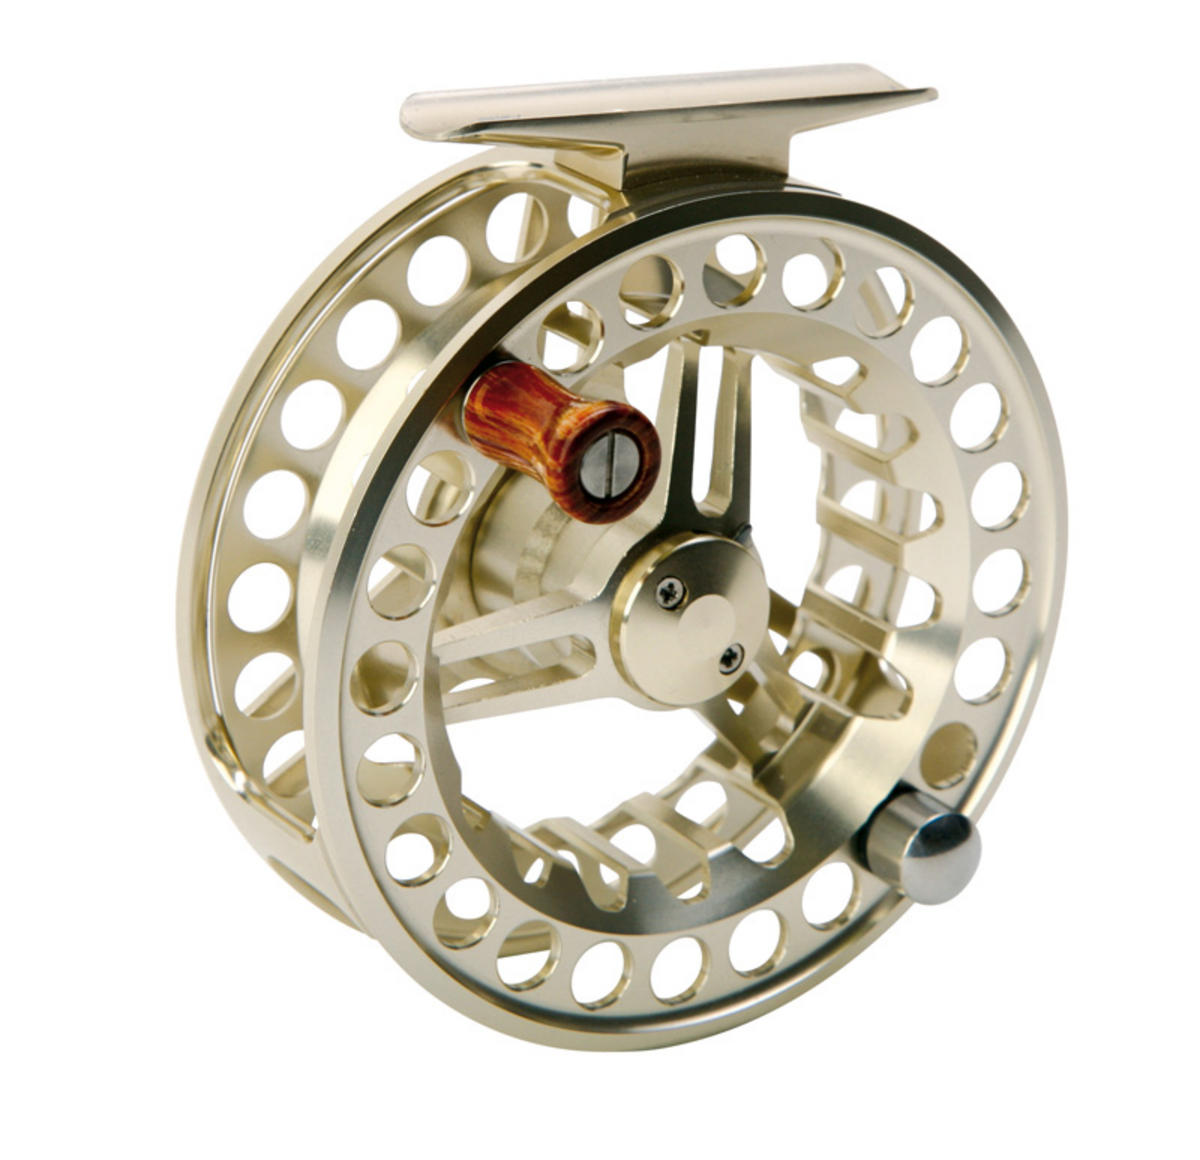 DAIWA LOCHMOR SLA 3/4 Model No LMSLA34 LARGE ARBOR FLY REEL